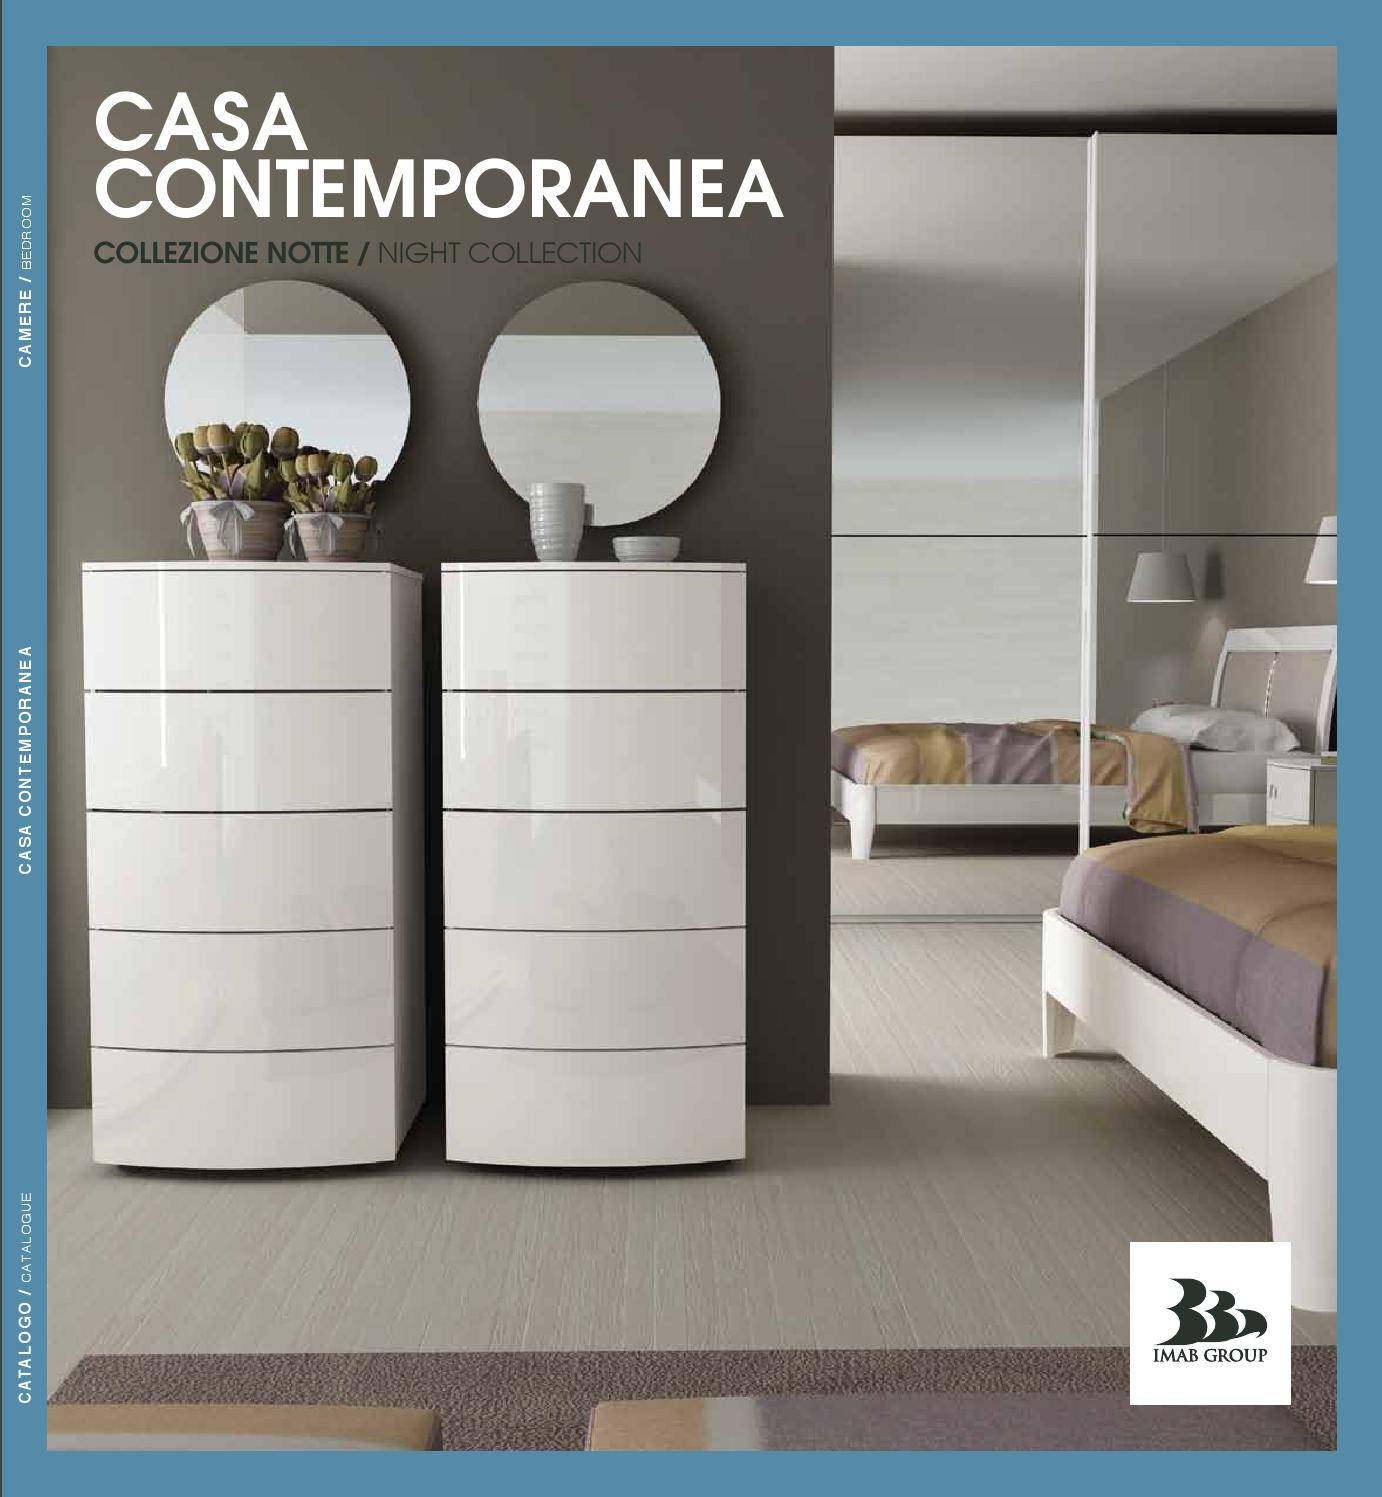 IMAB CASA CONTEMPORANEA by KAG Meble i Światło - issuu